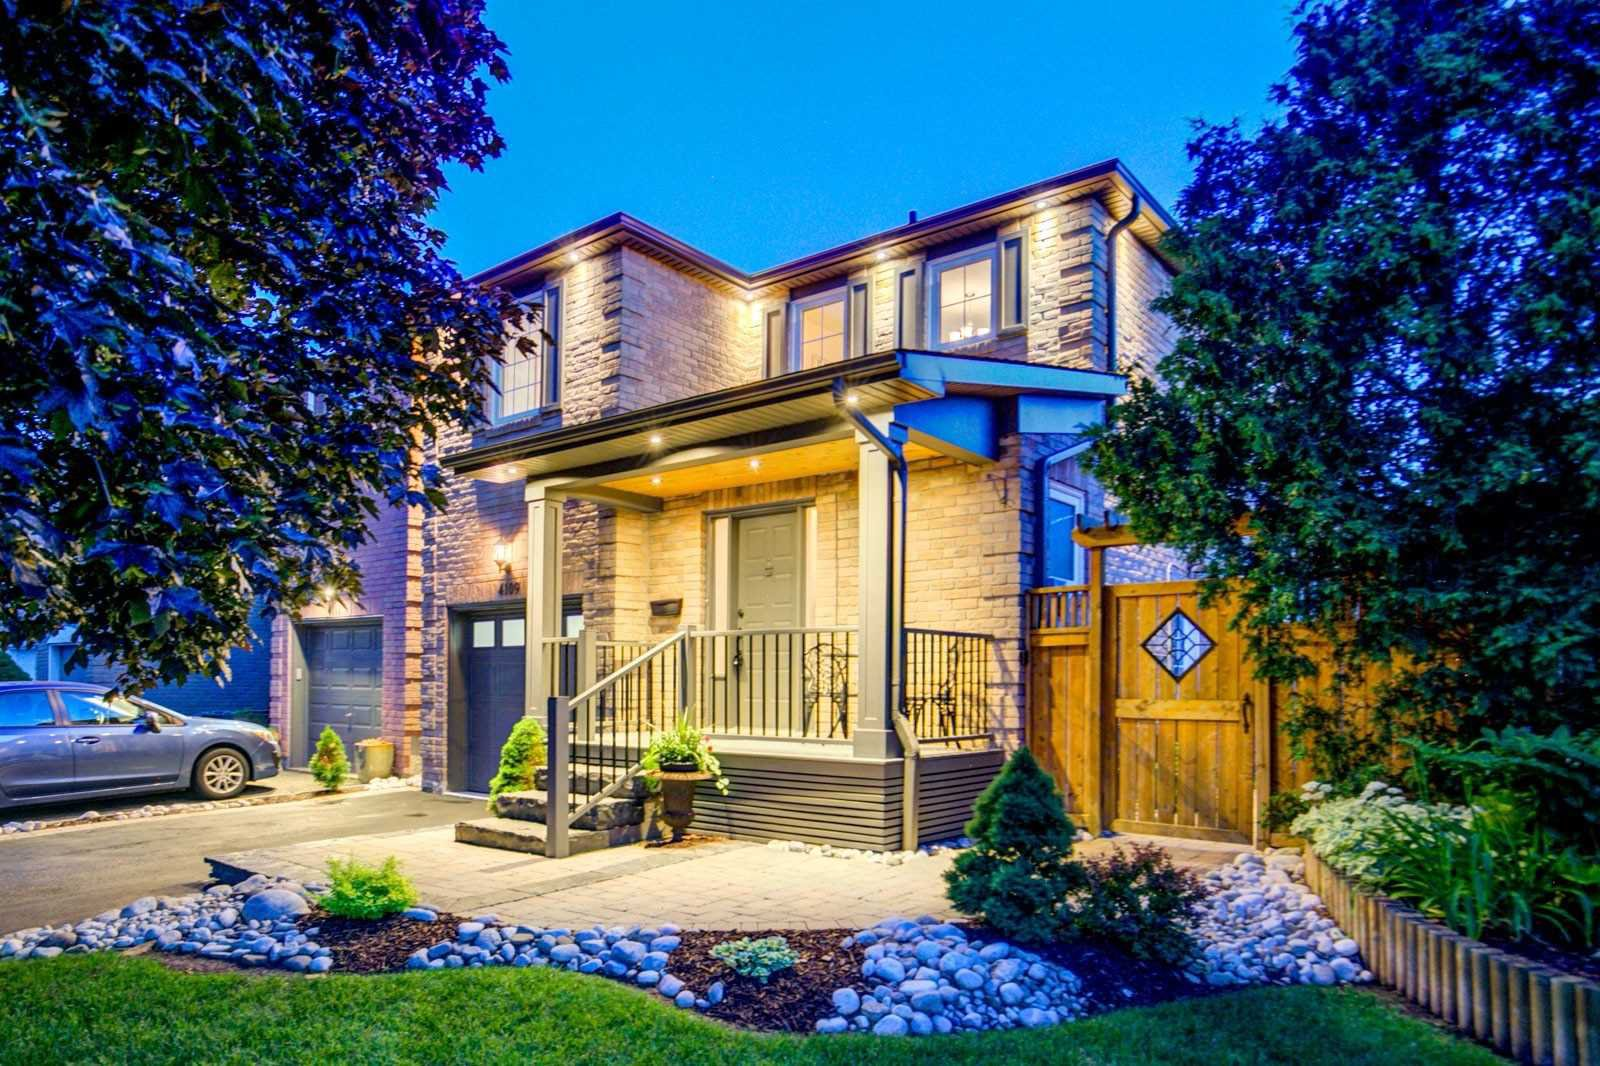 Main Photo: 4109 Forest Fire Crescent in Mississauga: Rathwood House (2-Storey) for sale : MLS®# W4498431